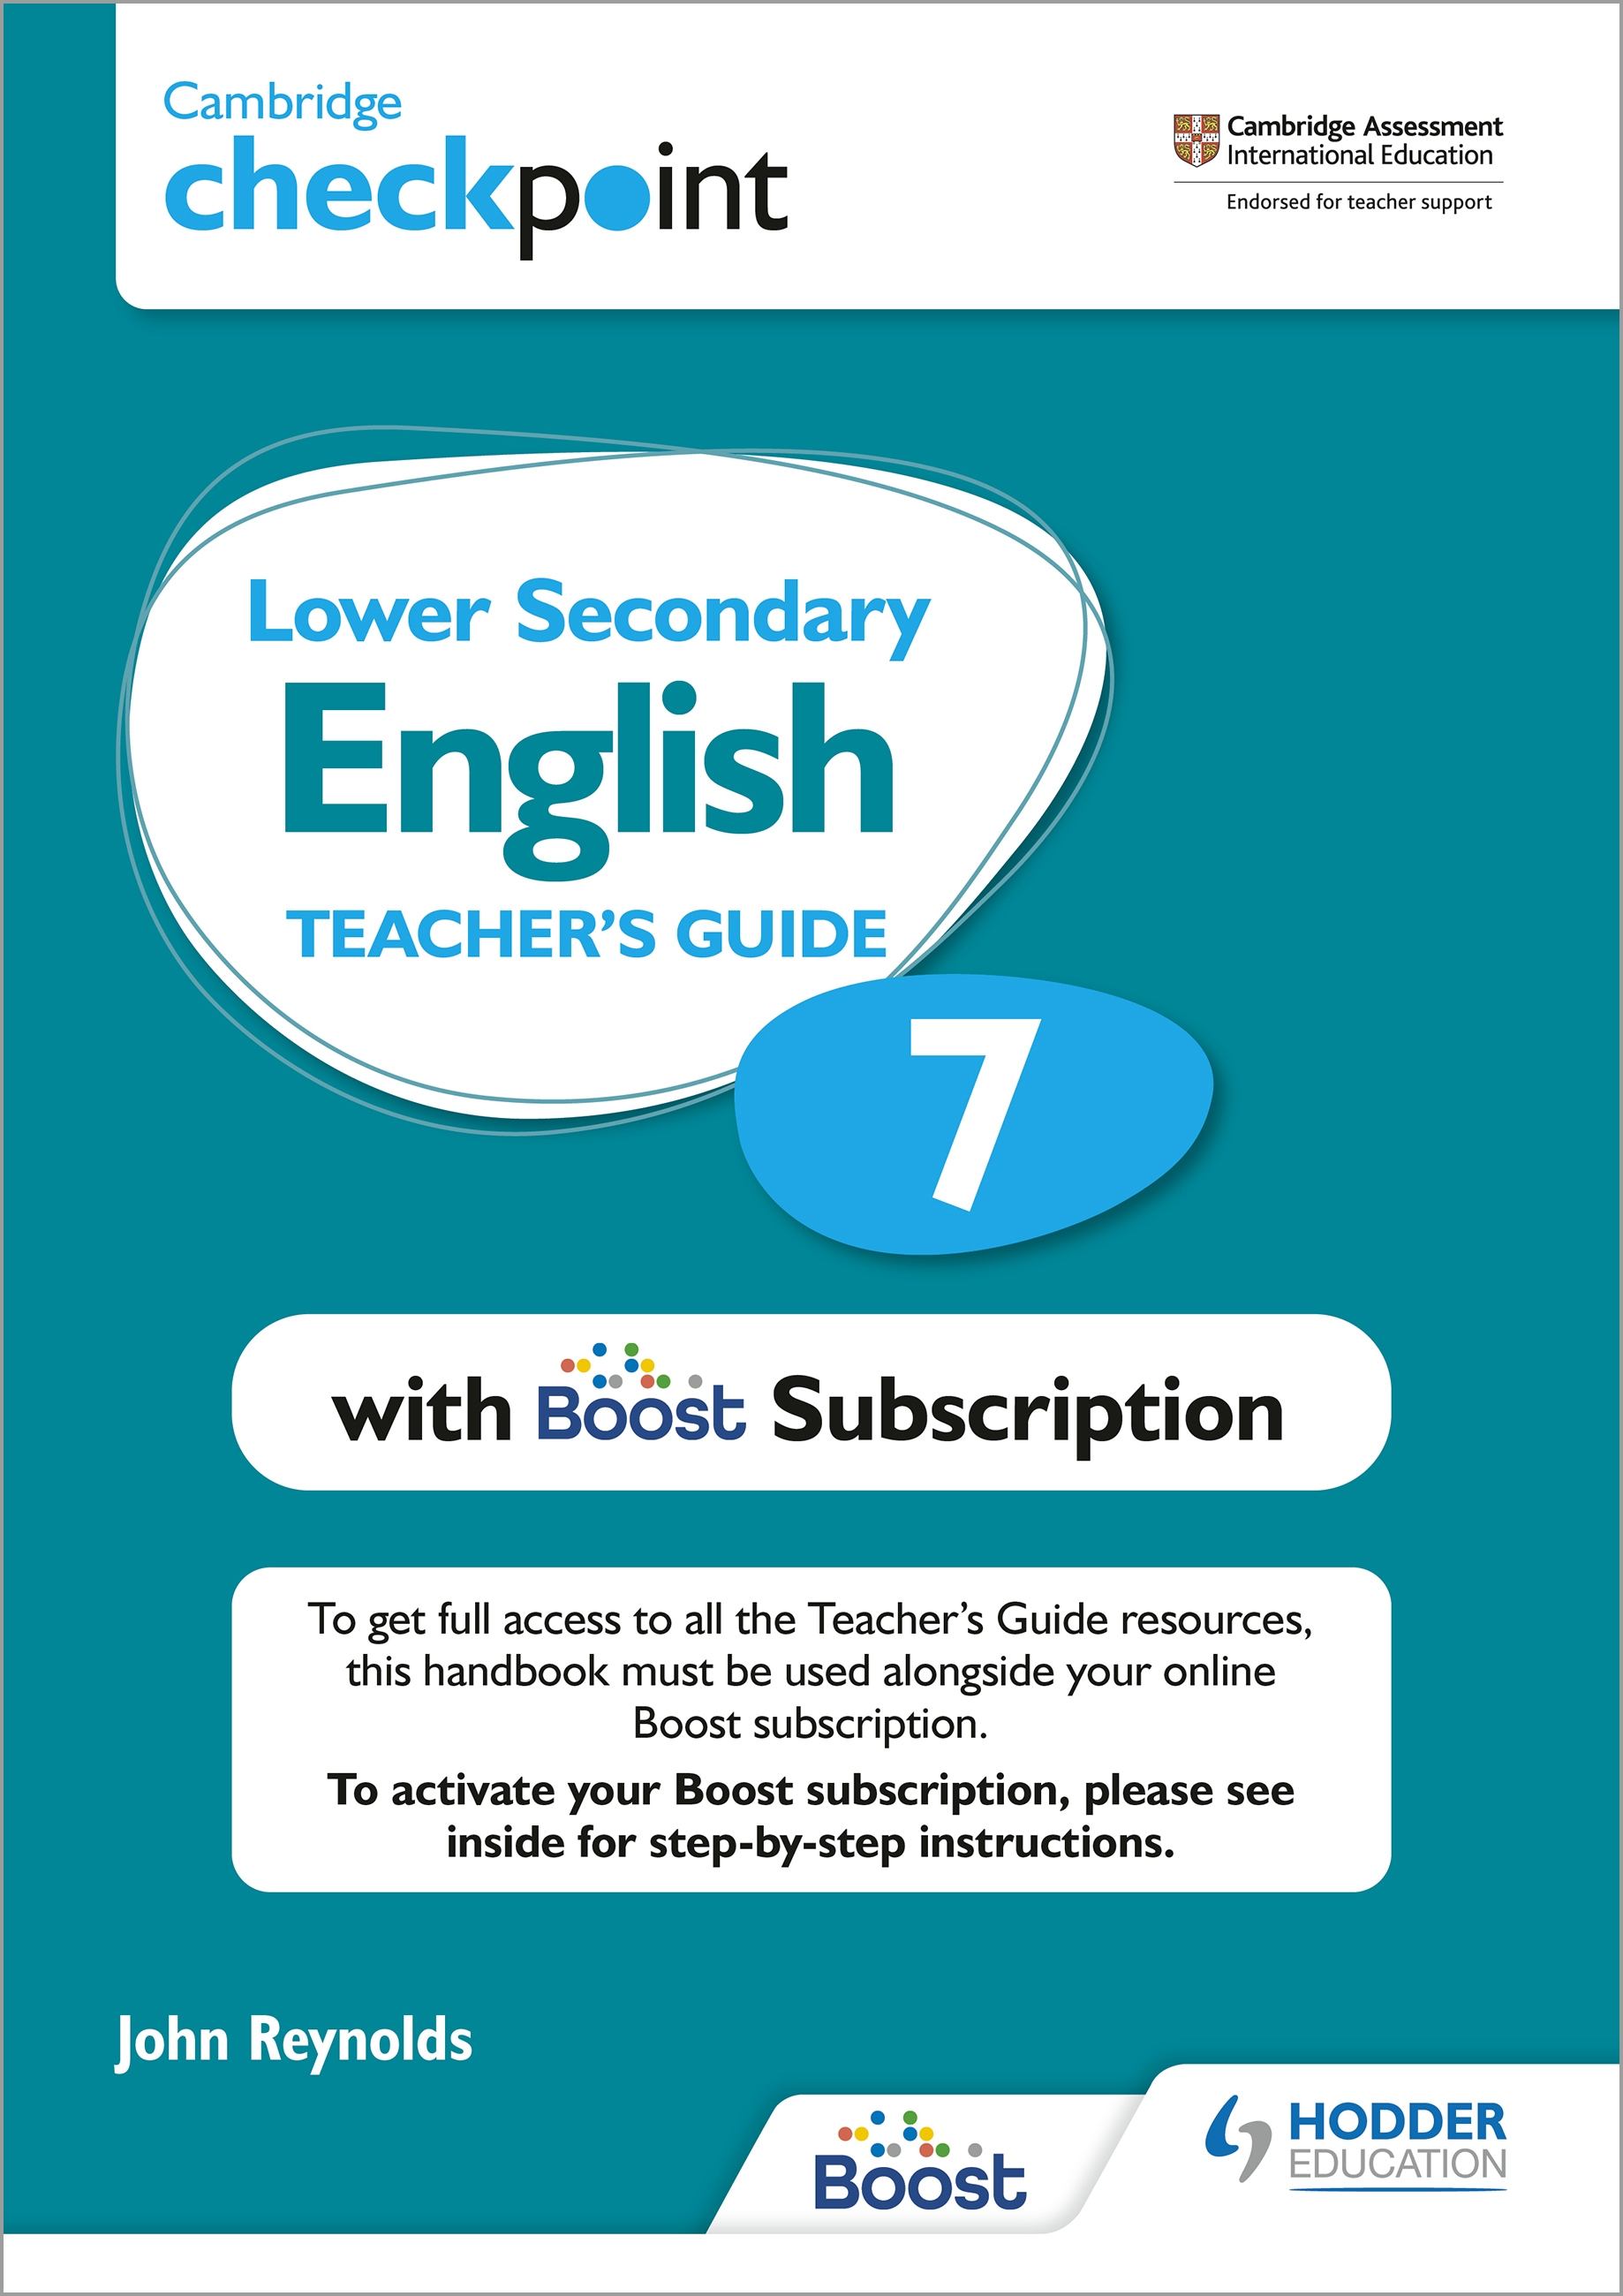 Cambridge Checkpoint Lower Secondary English Teacher's Guide 7 with Boost Subscription Booklet : Third Edition